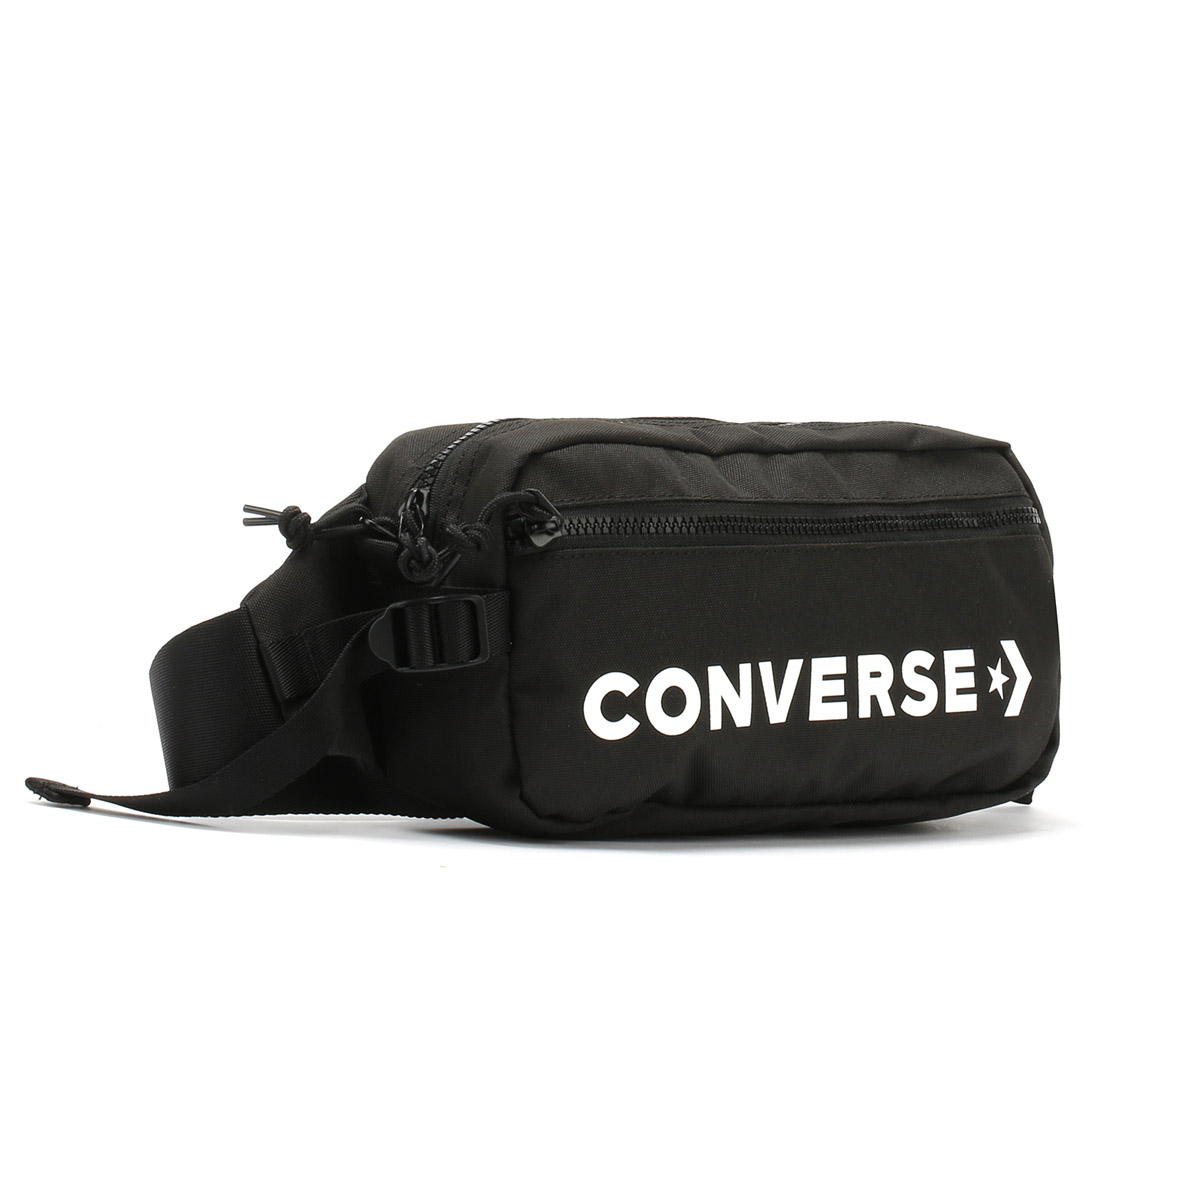 1ab5f2436b1 Converse Black   White Fast Pack Sling Bag Unisex Travel ...